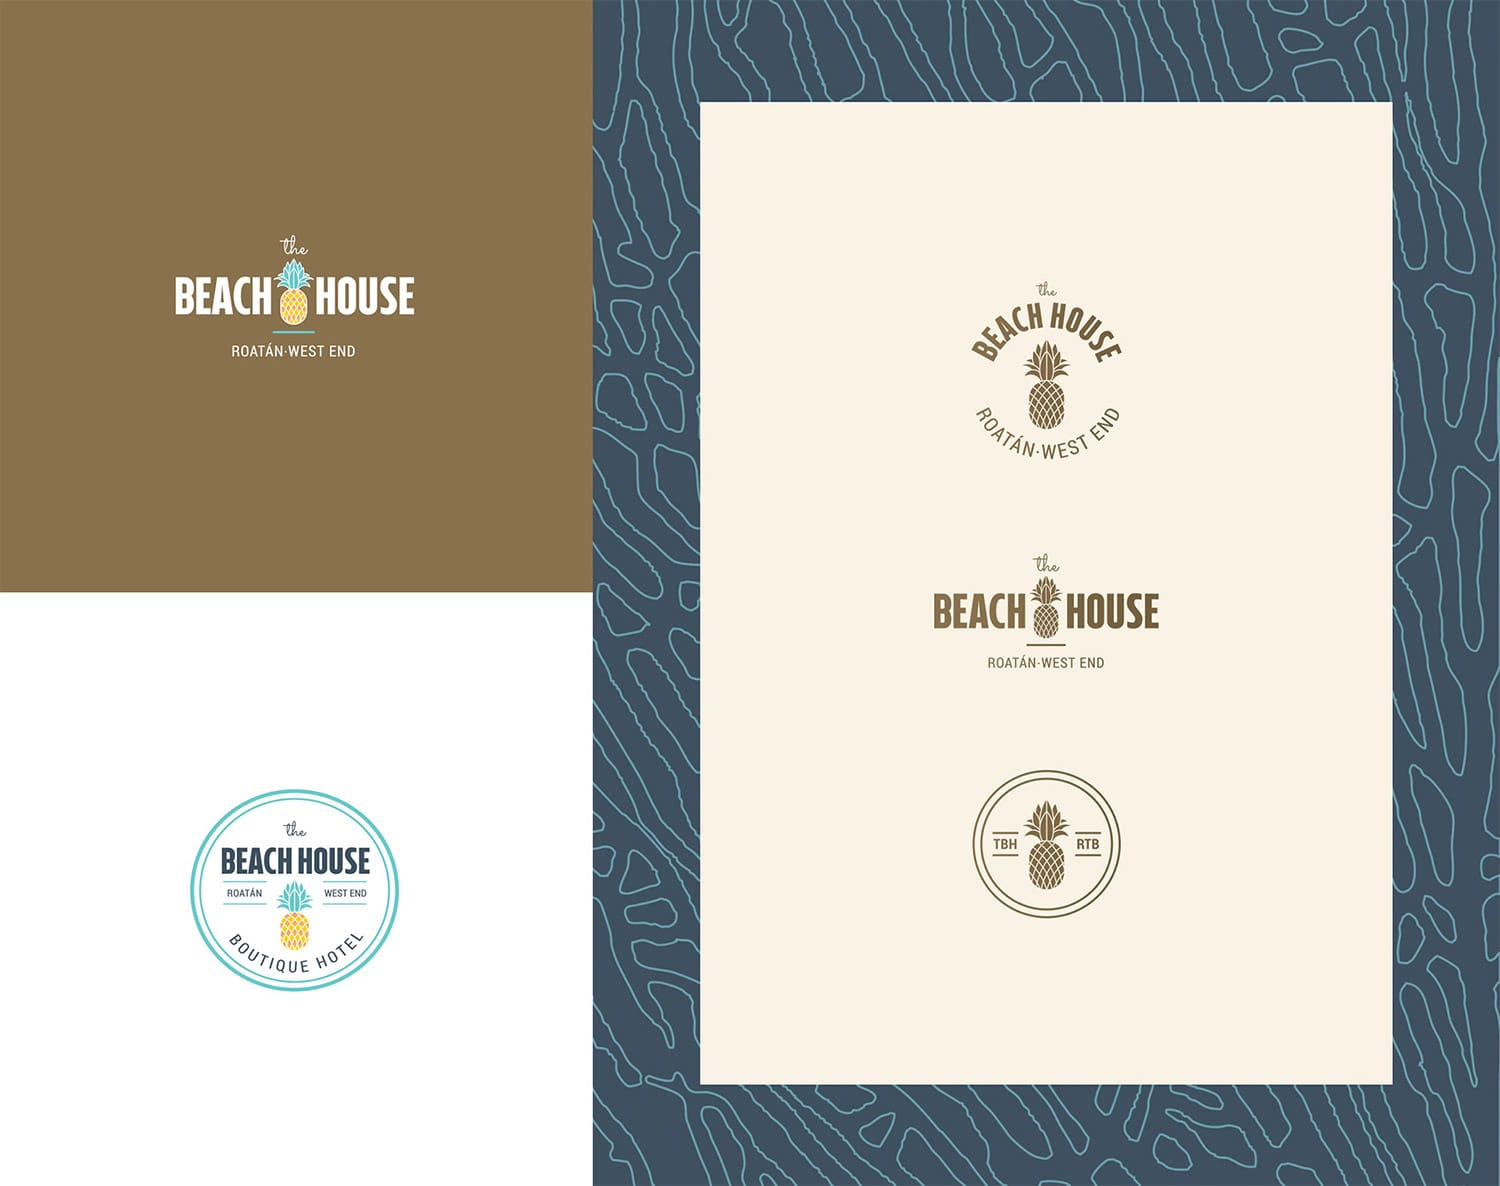 Redesign The Beach House